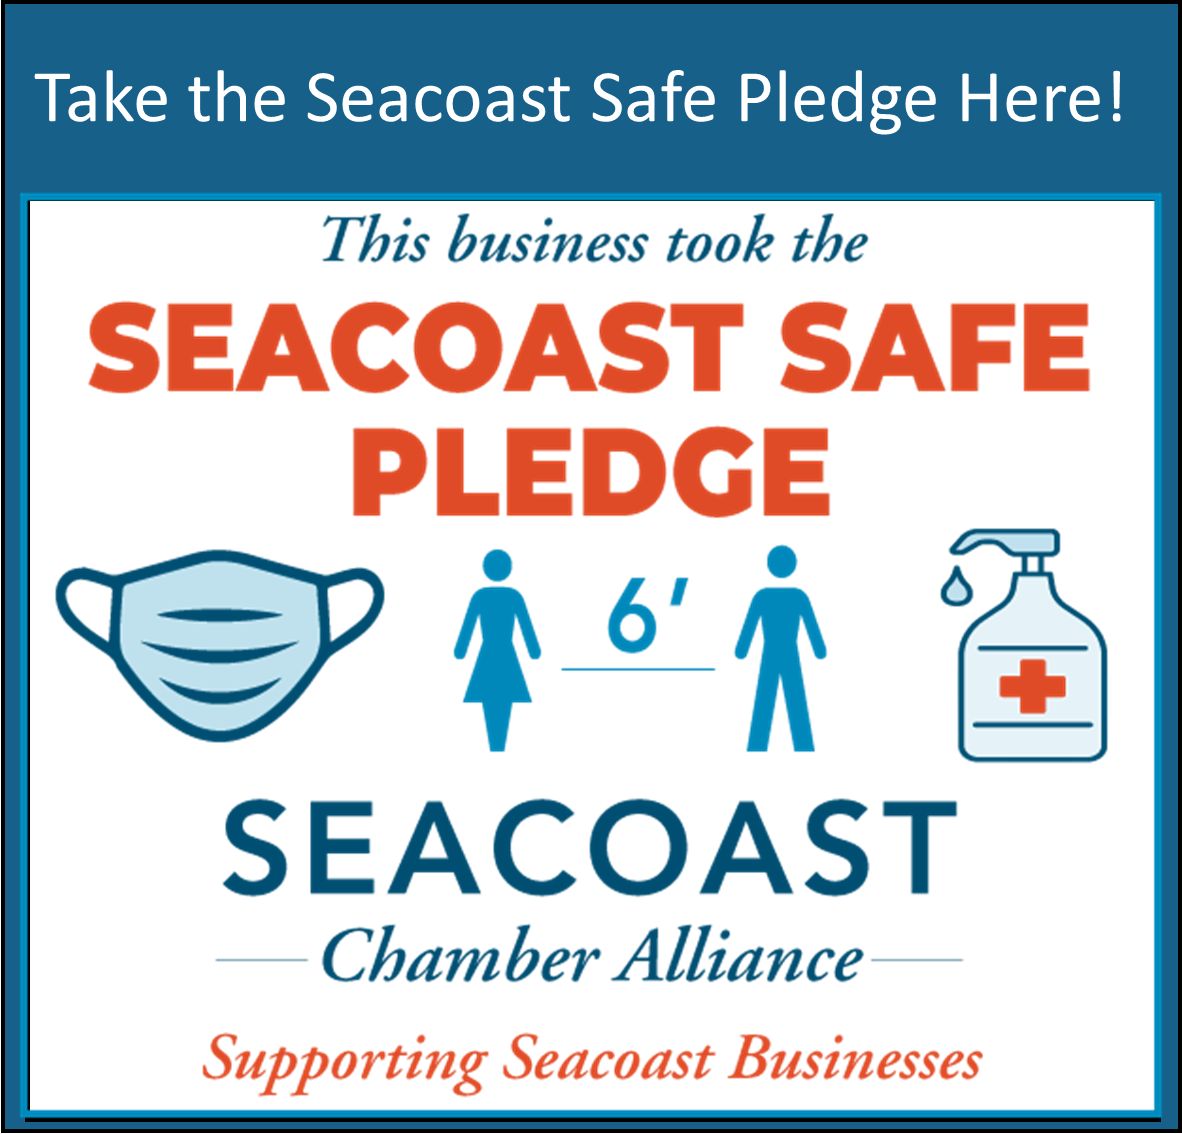 Seacoast Safe pledge